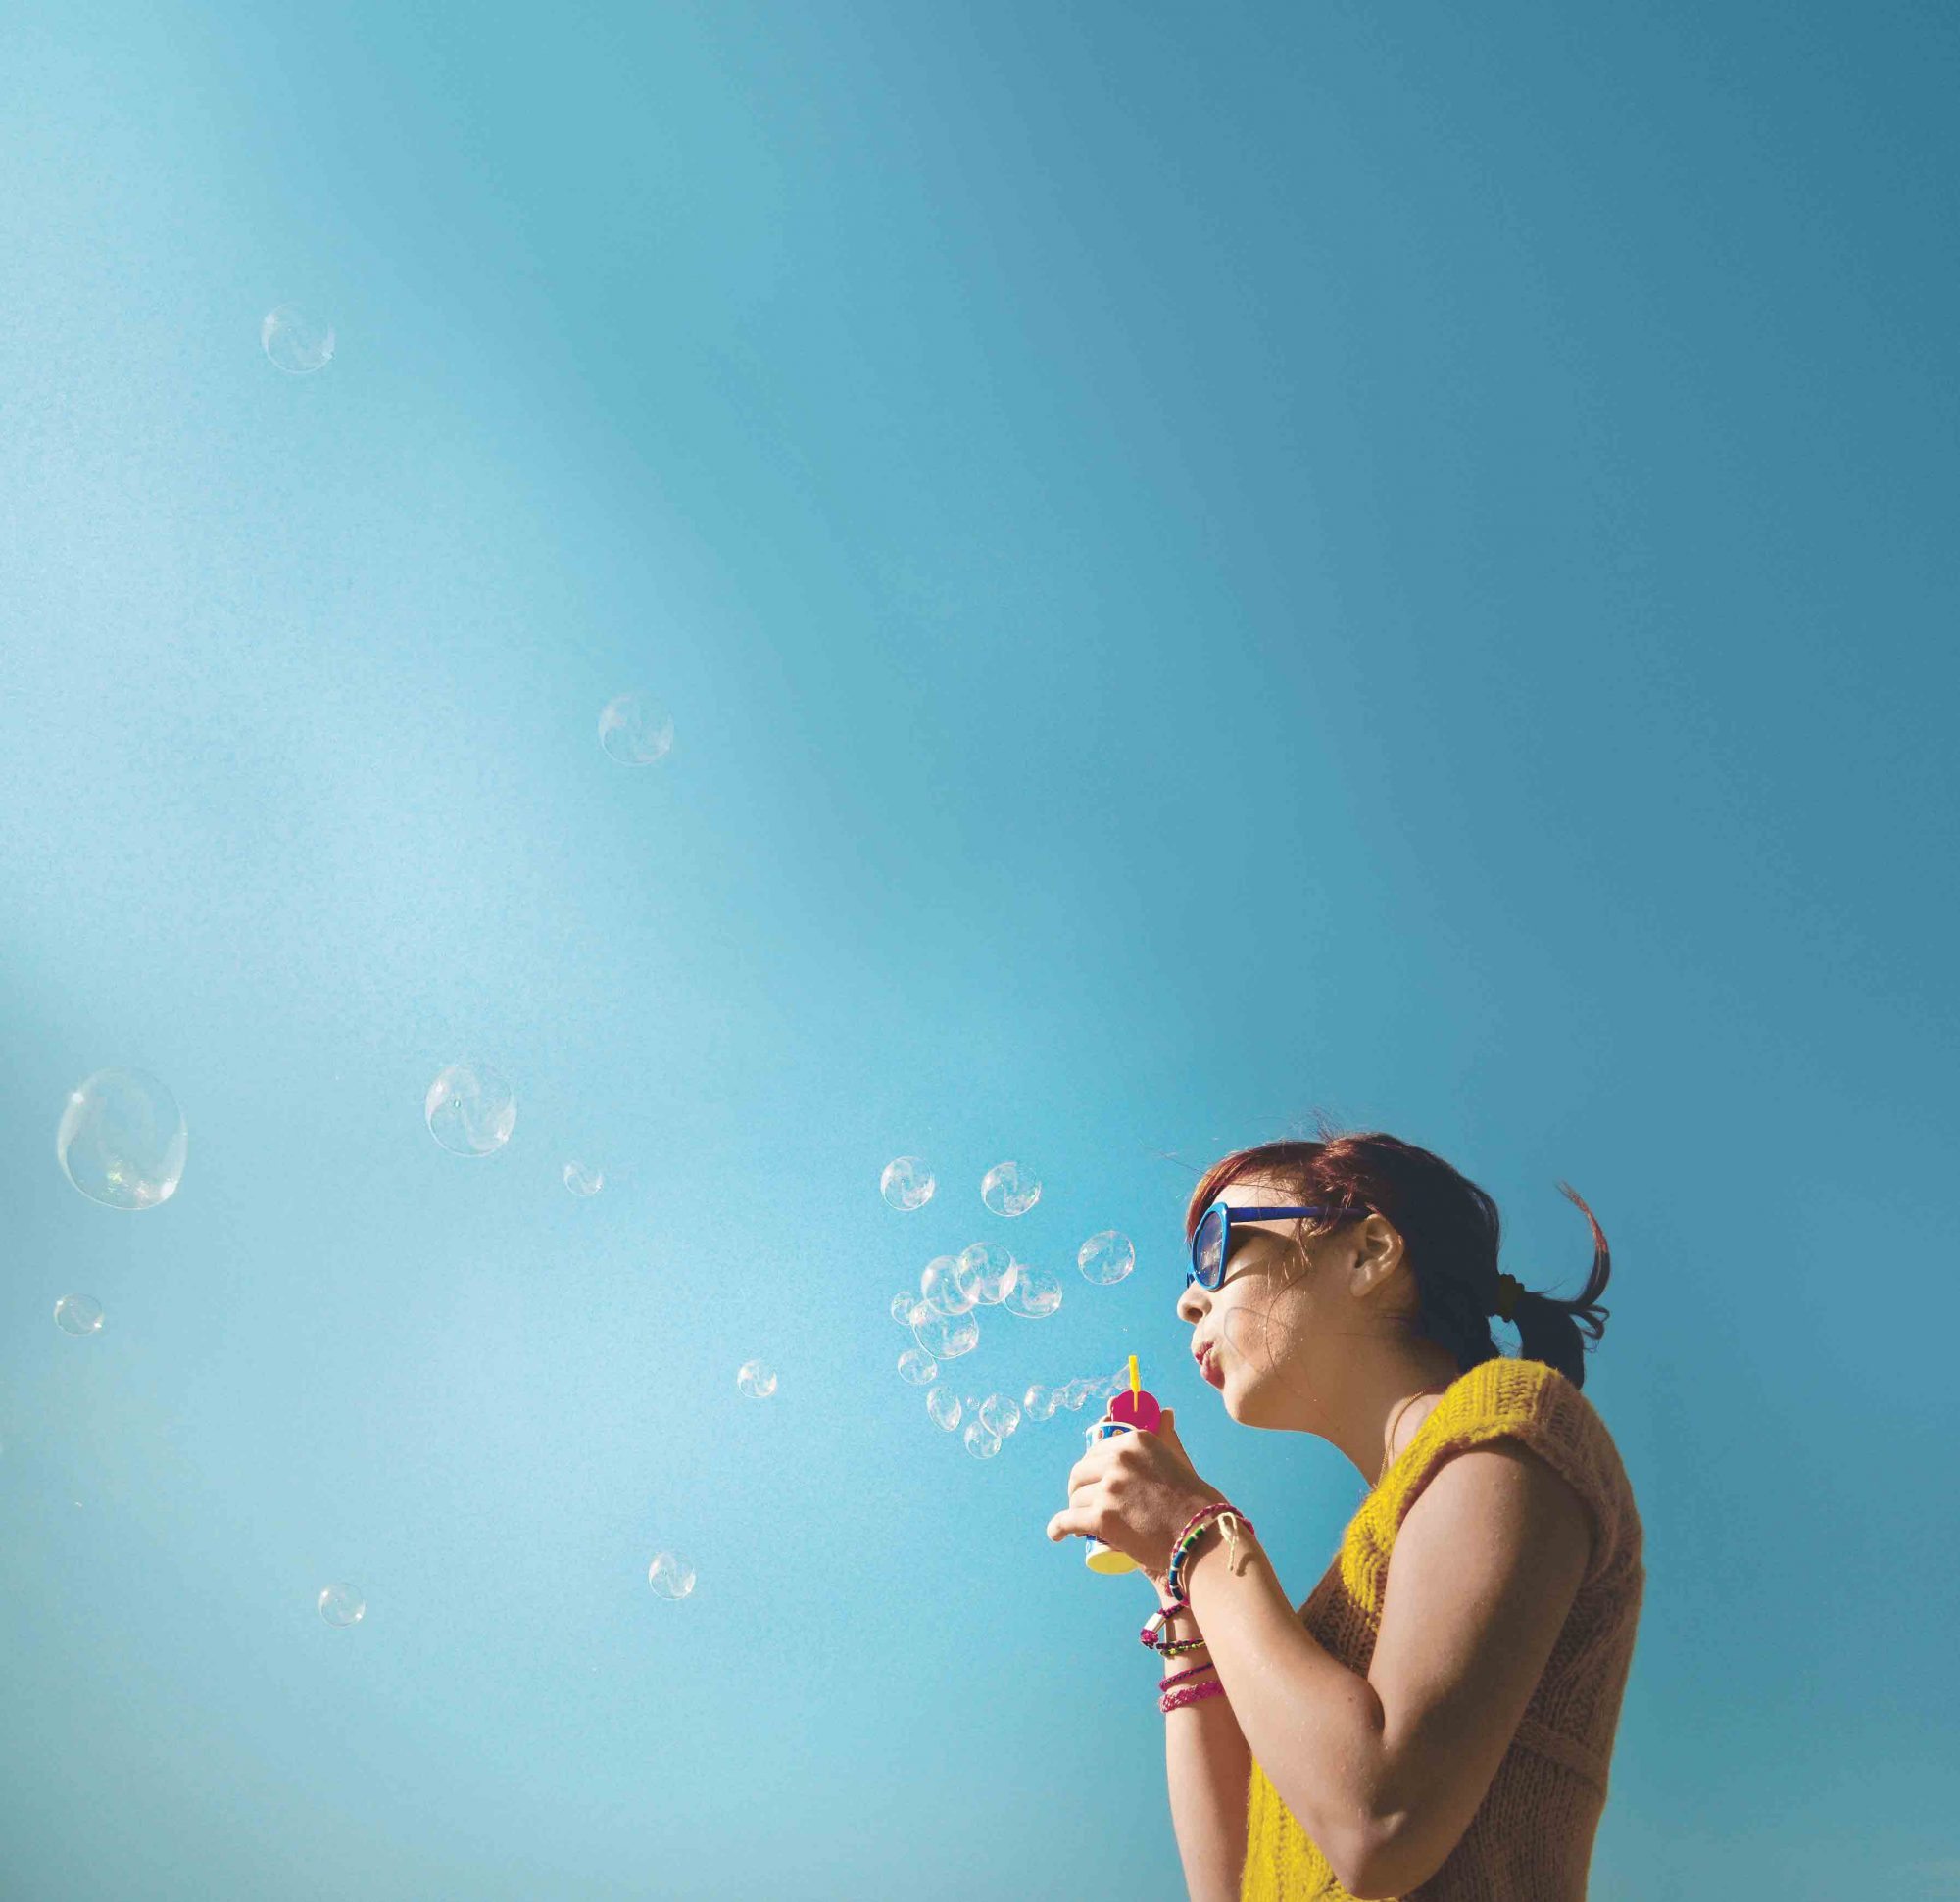 joy-blowing-bubbles-happy-summer